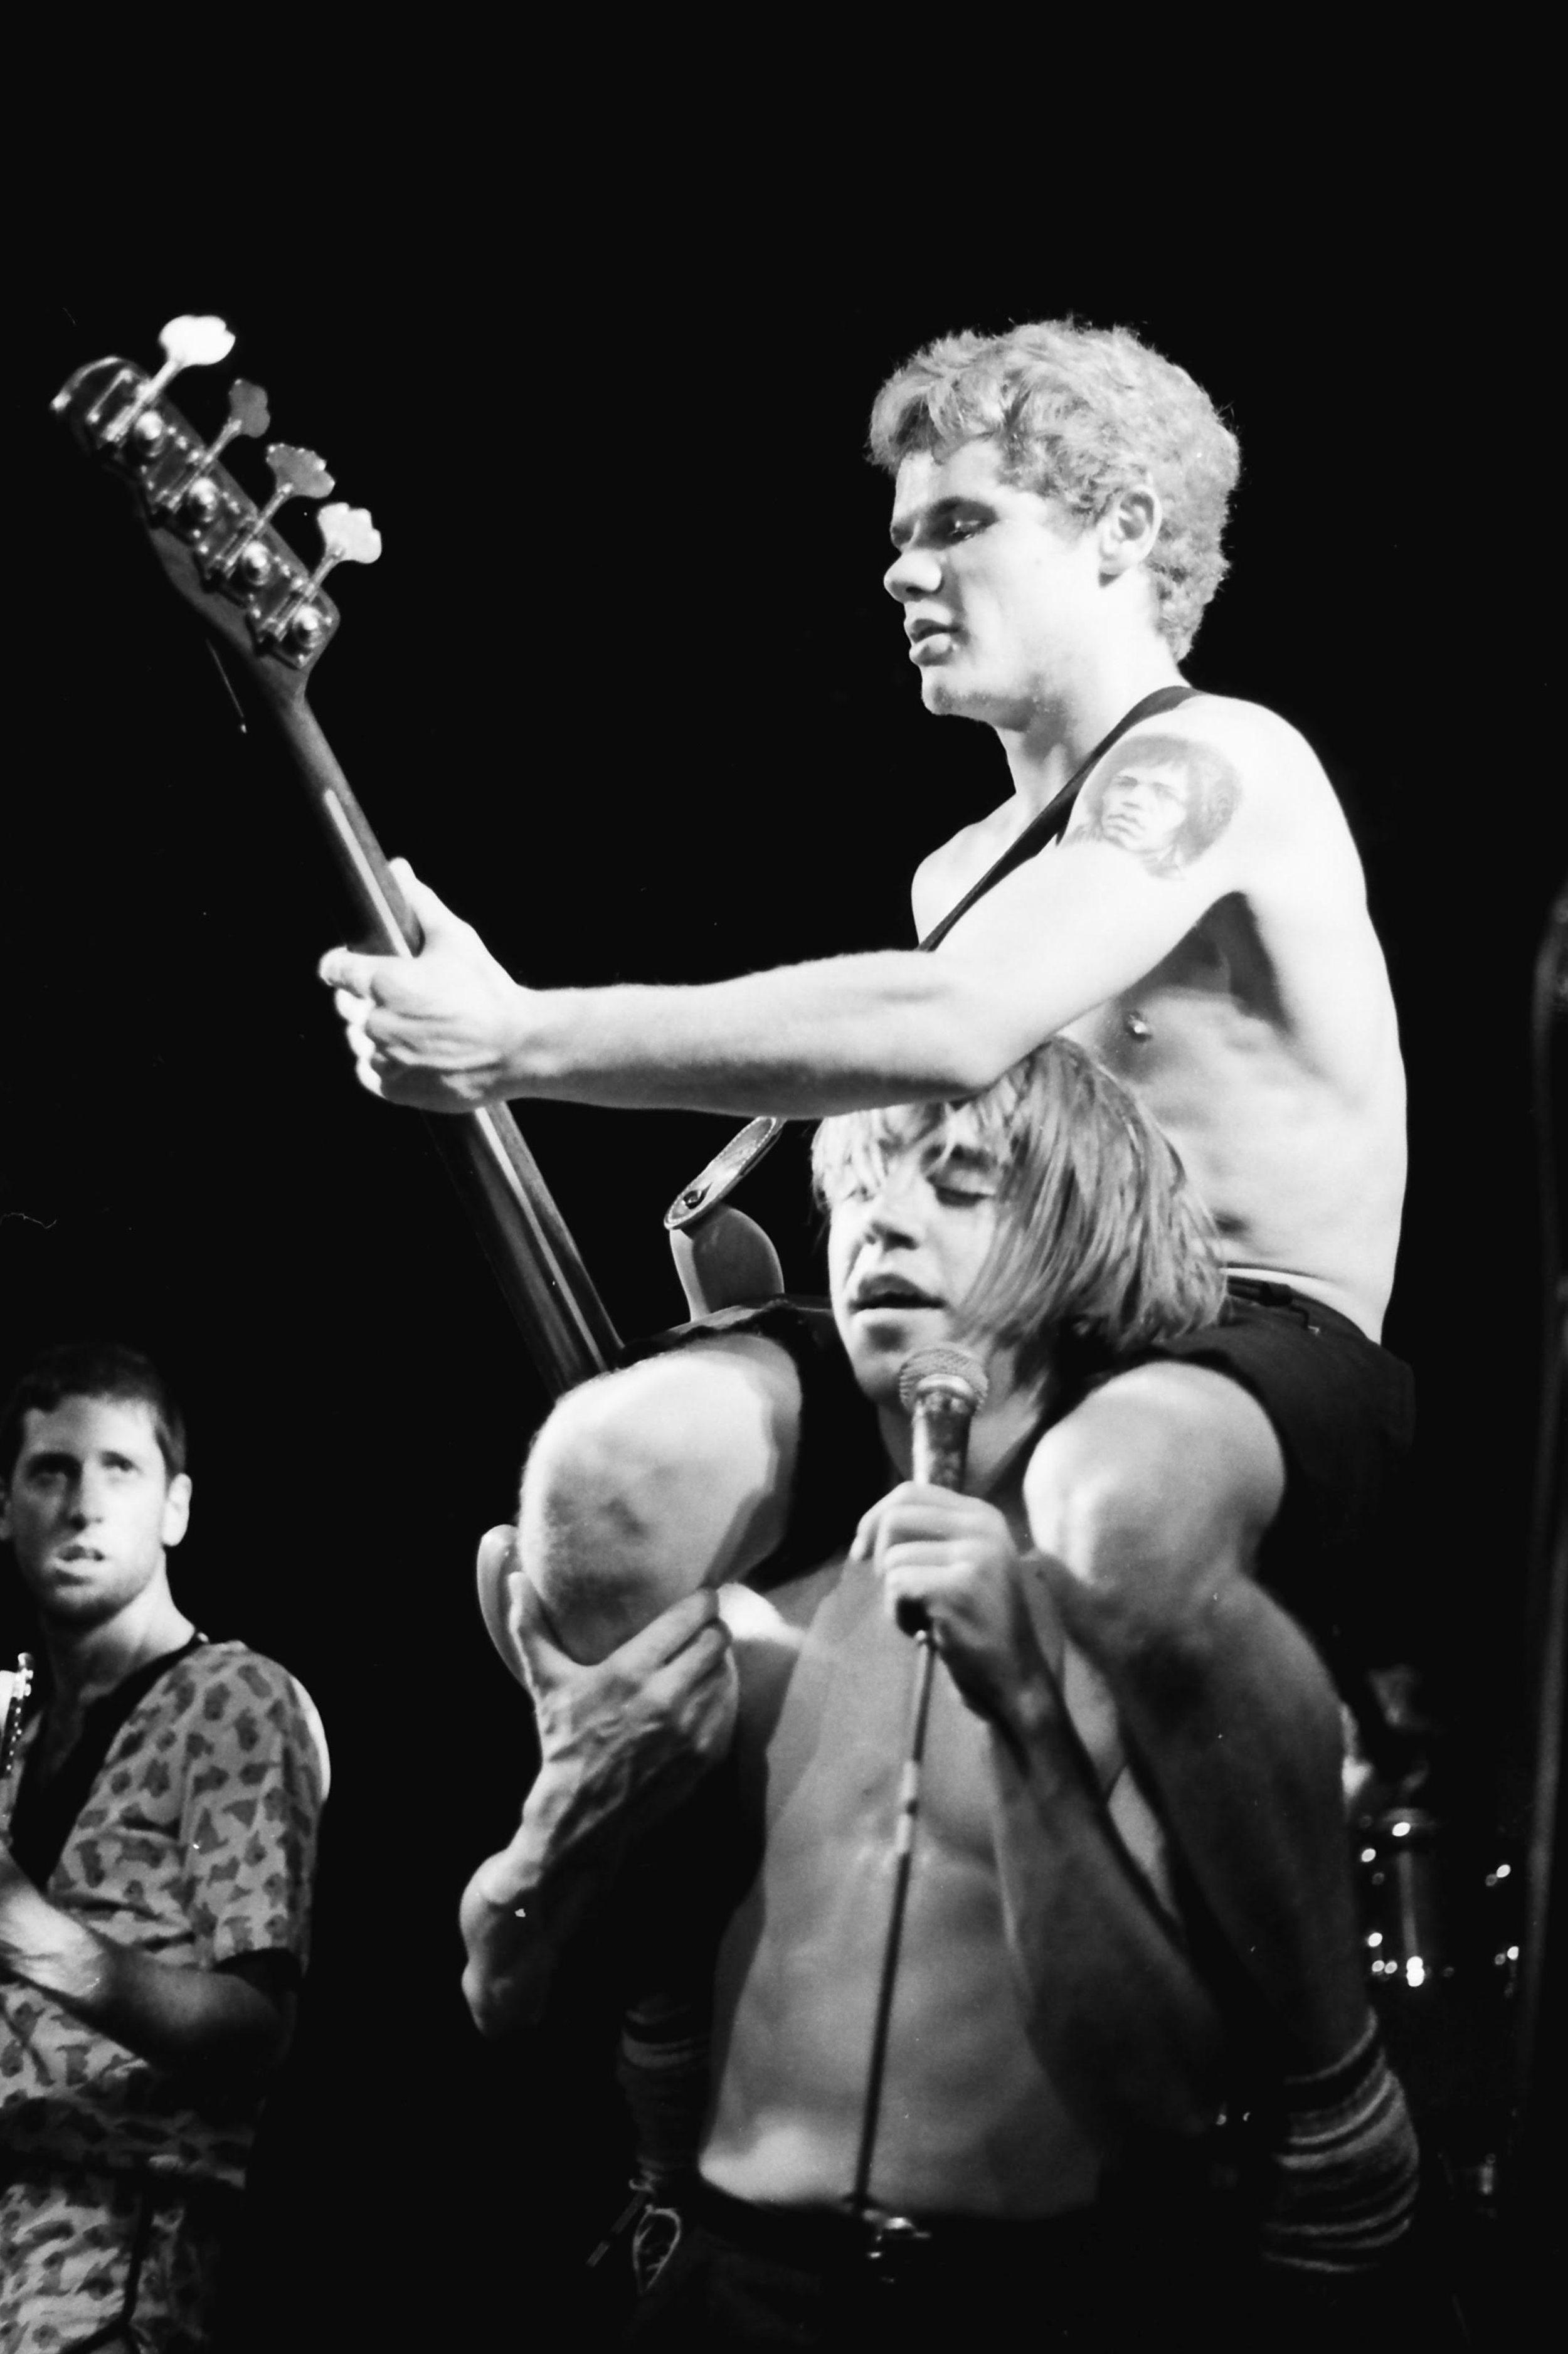 "Flea & Anthony   ""Early Red Hot Chili Peppers photo shot at a Soundstage somewhere in Hollywood before their first album"""